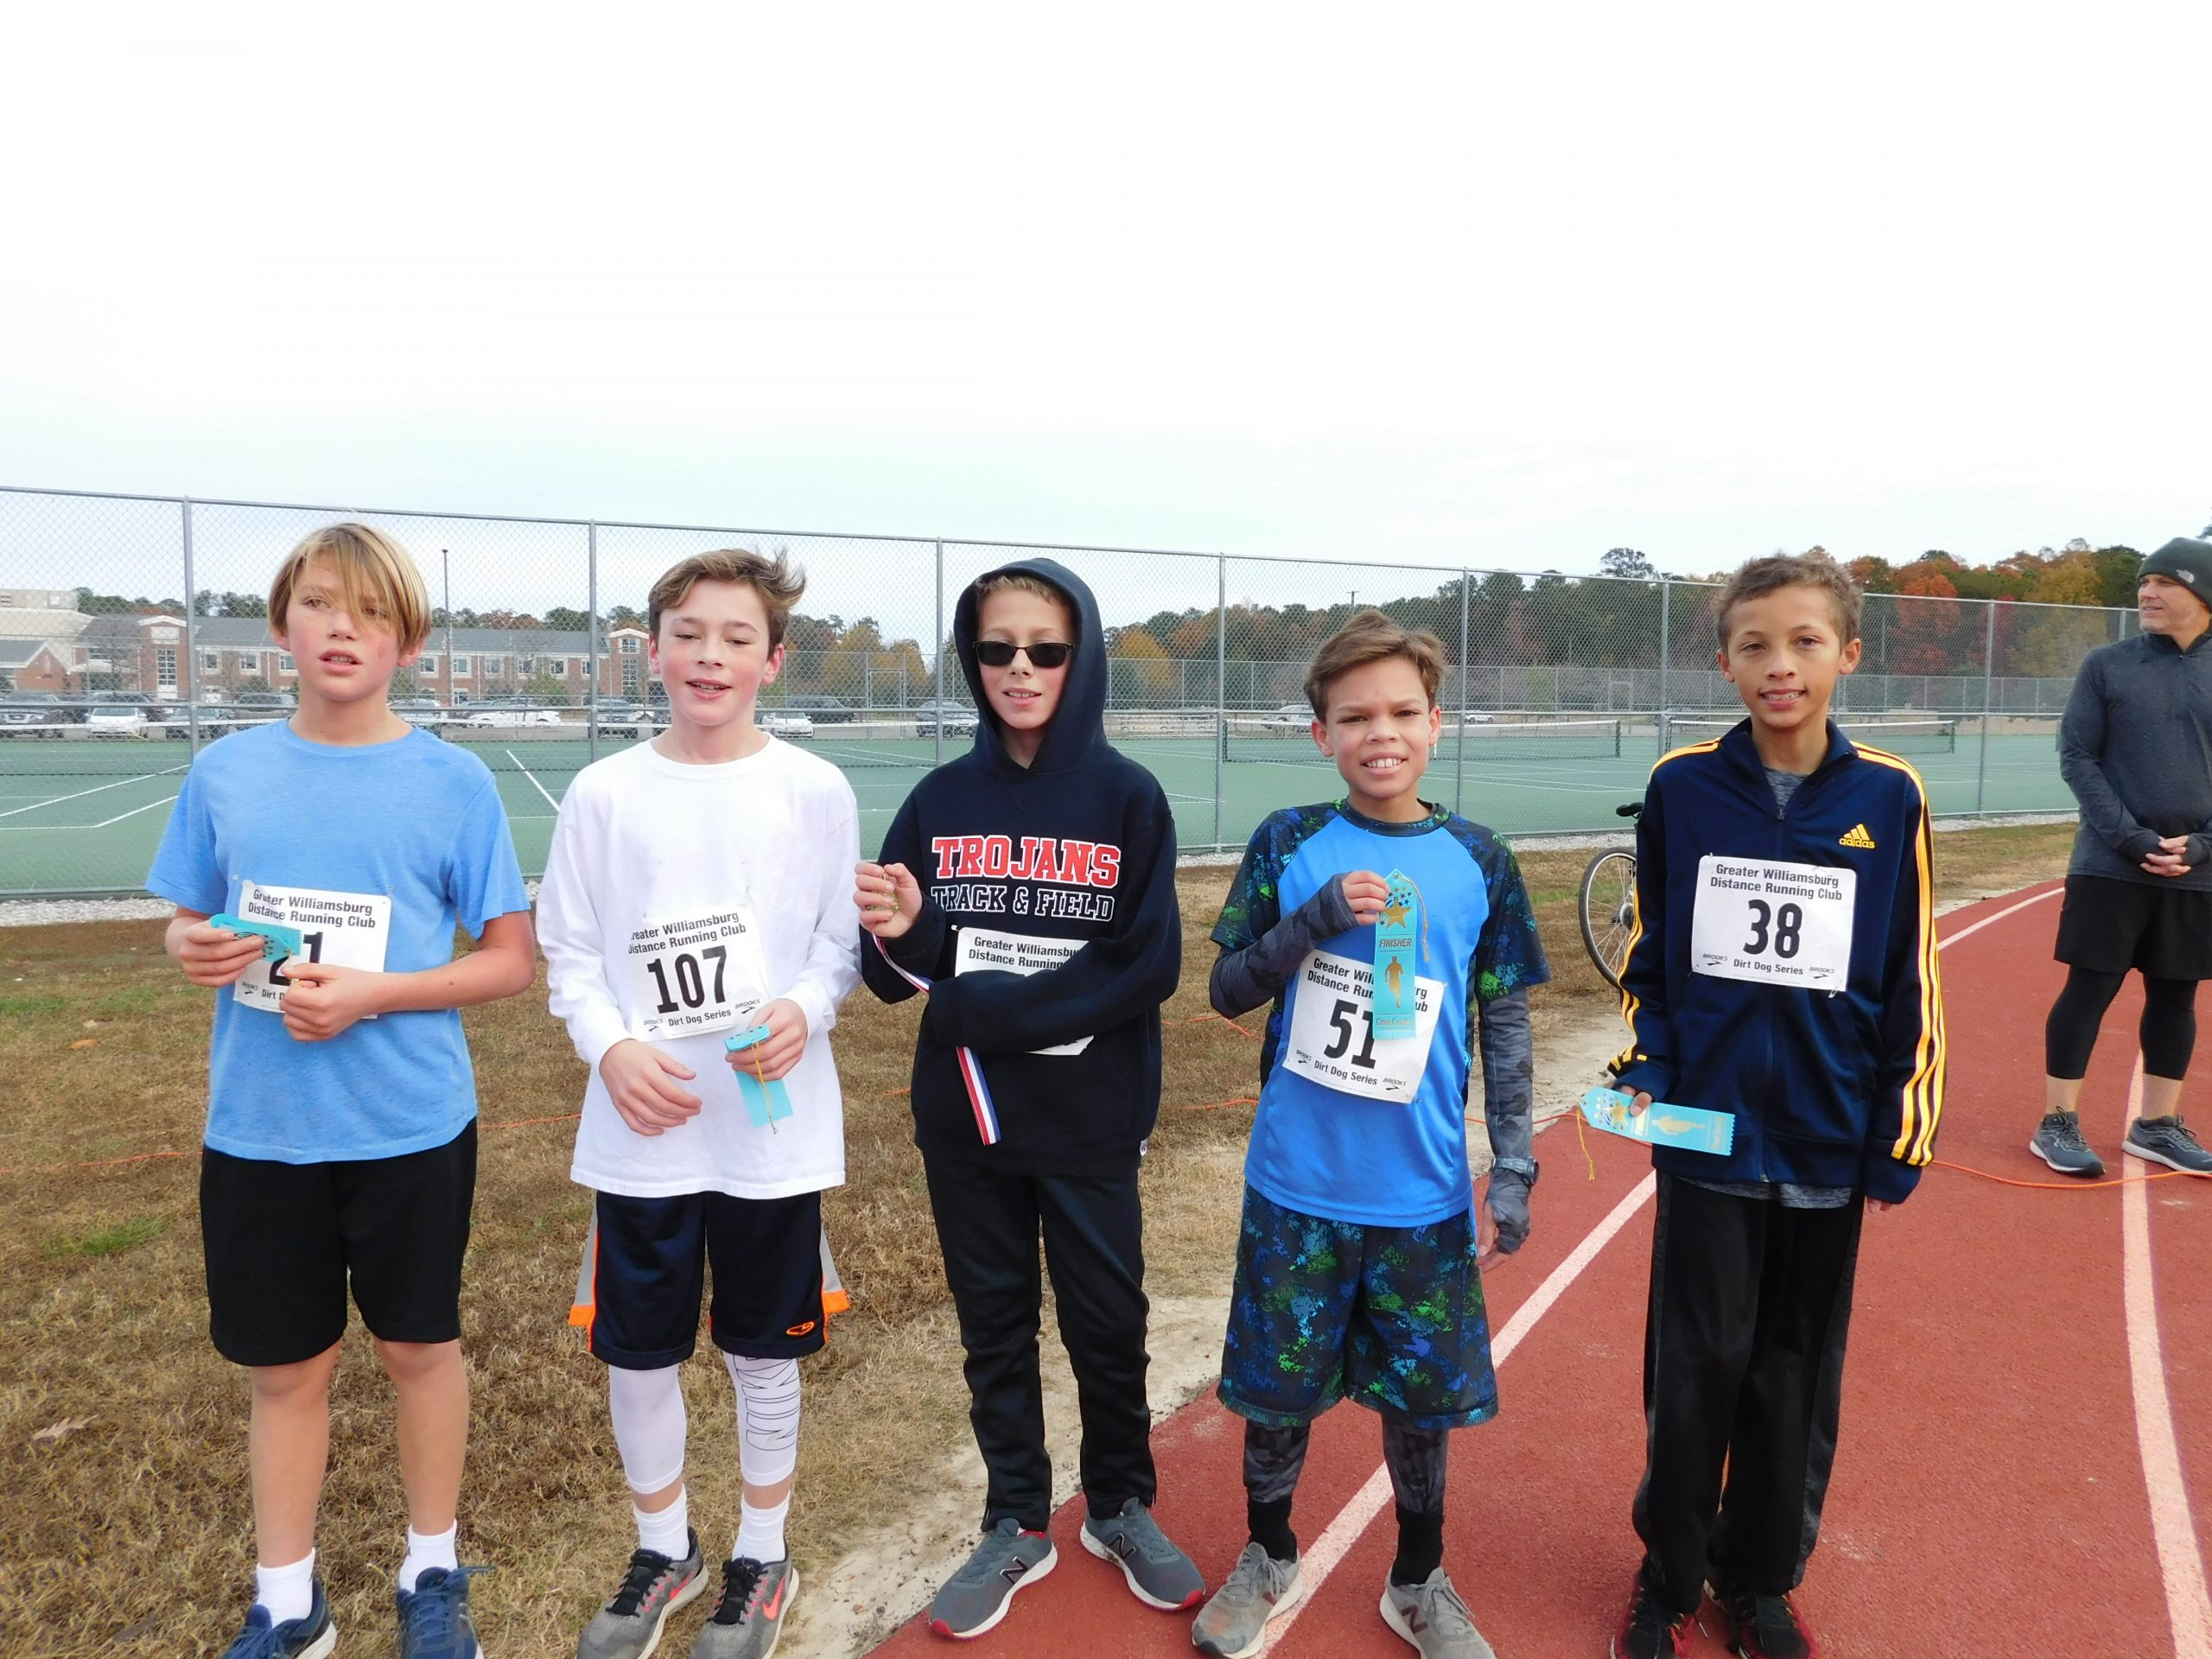 Boys after finishing their 1.5 mile event showing their ribbons